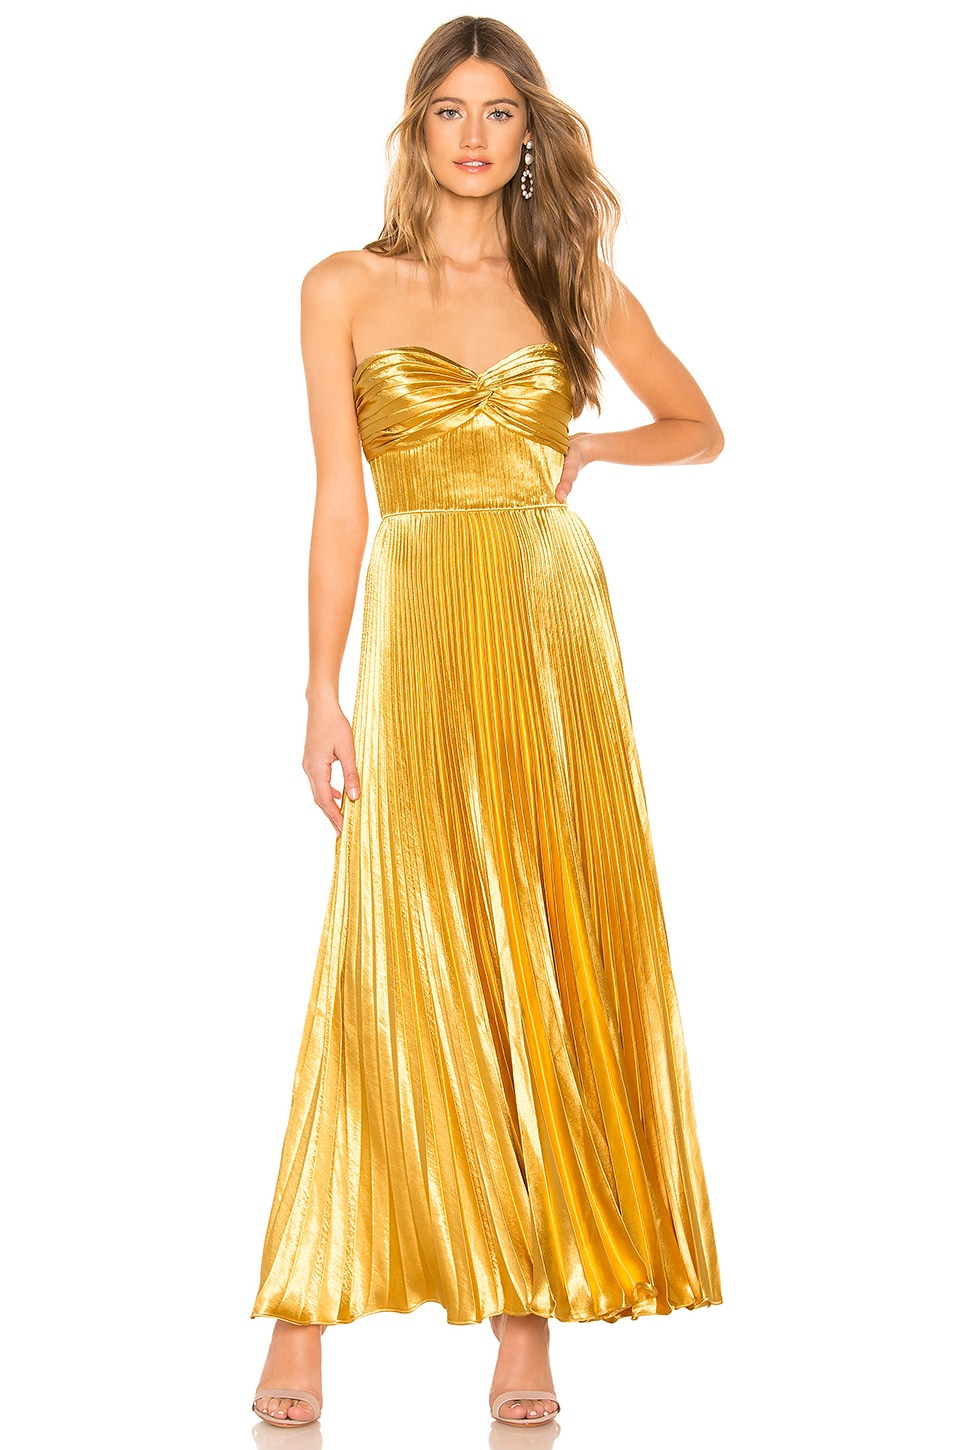 AMUR Belle Gown in Gold